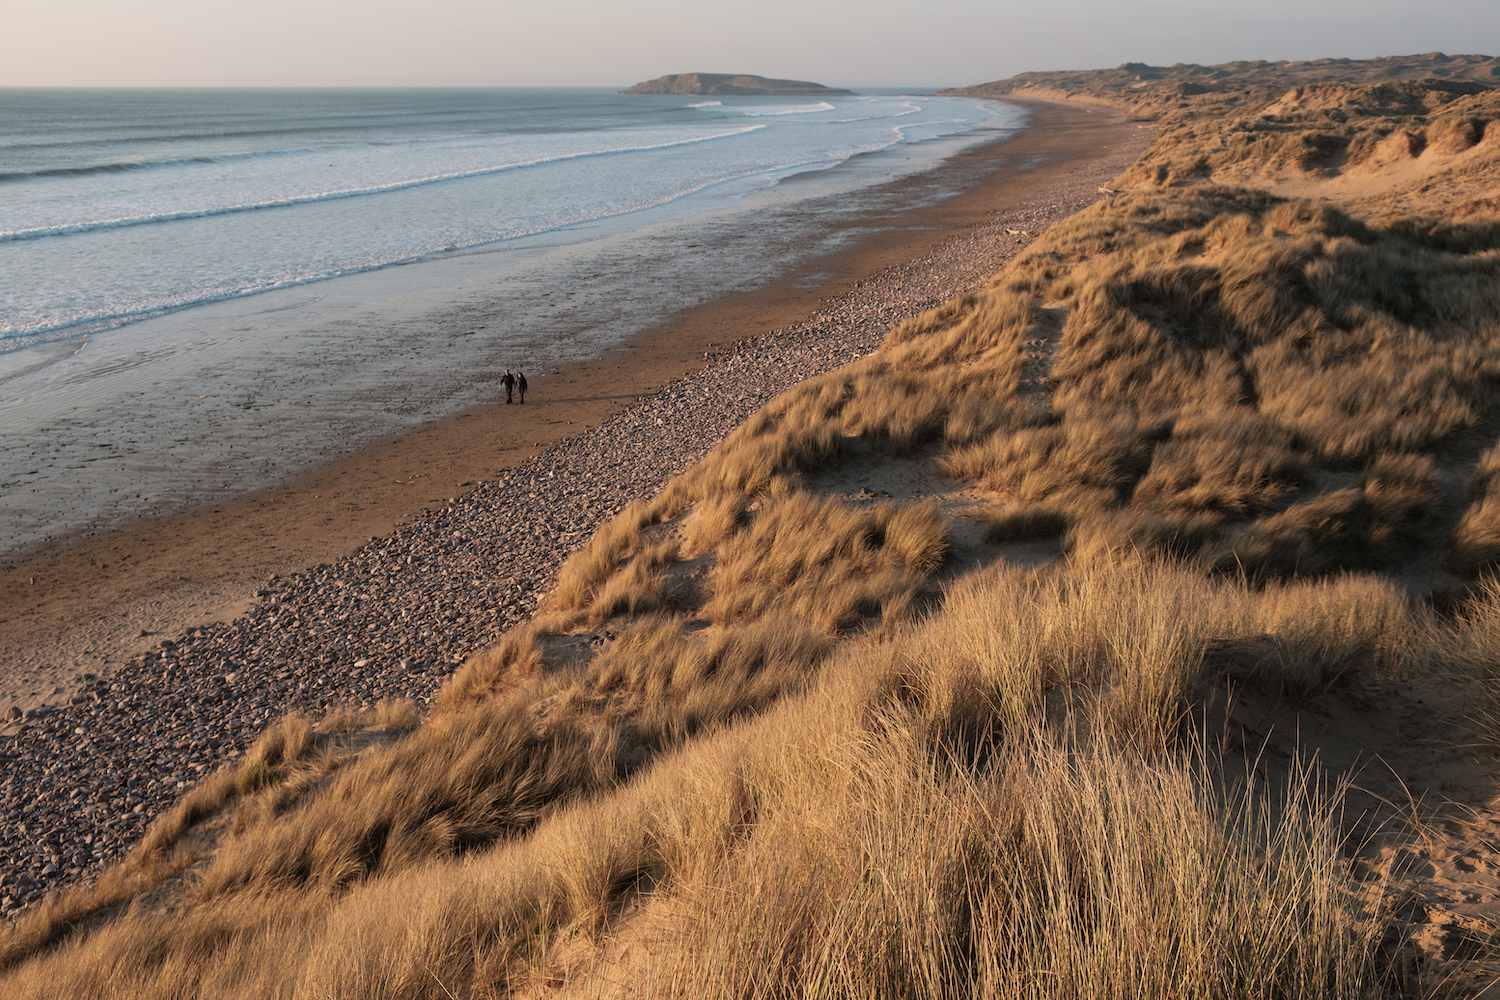 Llangennith Beach, Gower Peninsula South Wales, UK - Landscape Photography by Ben Holbrook-7